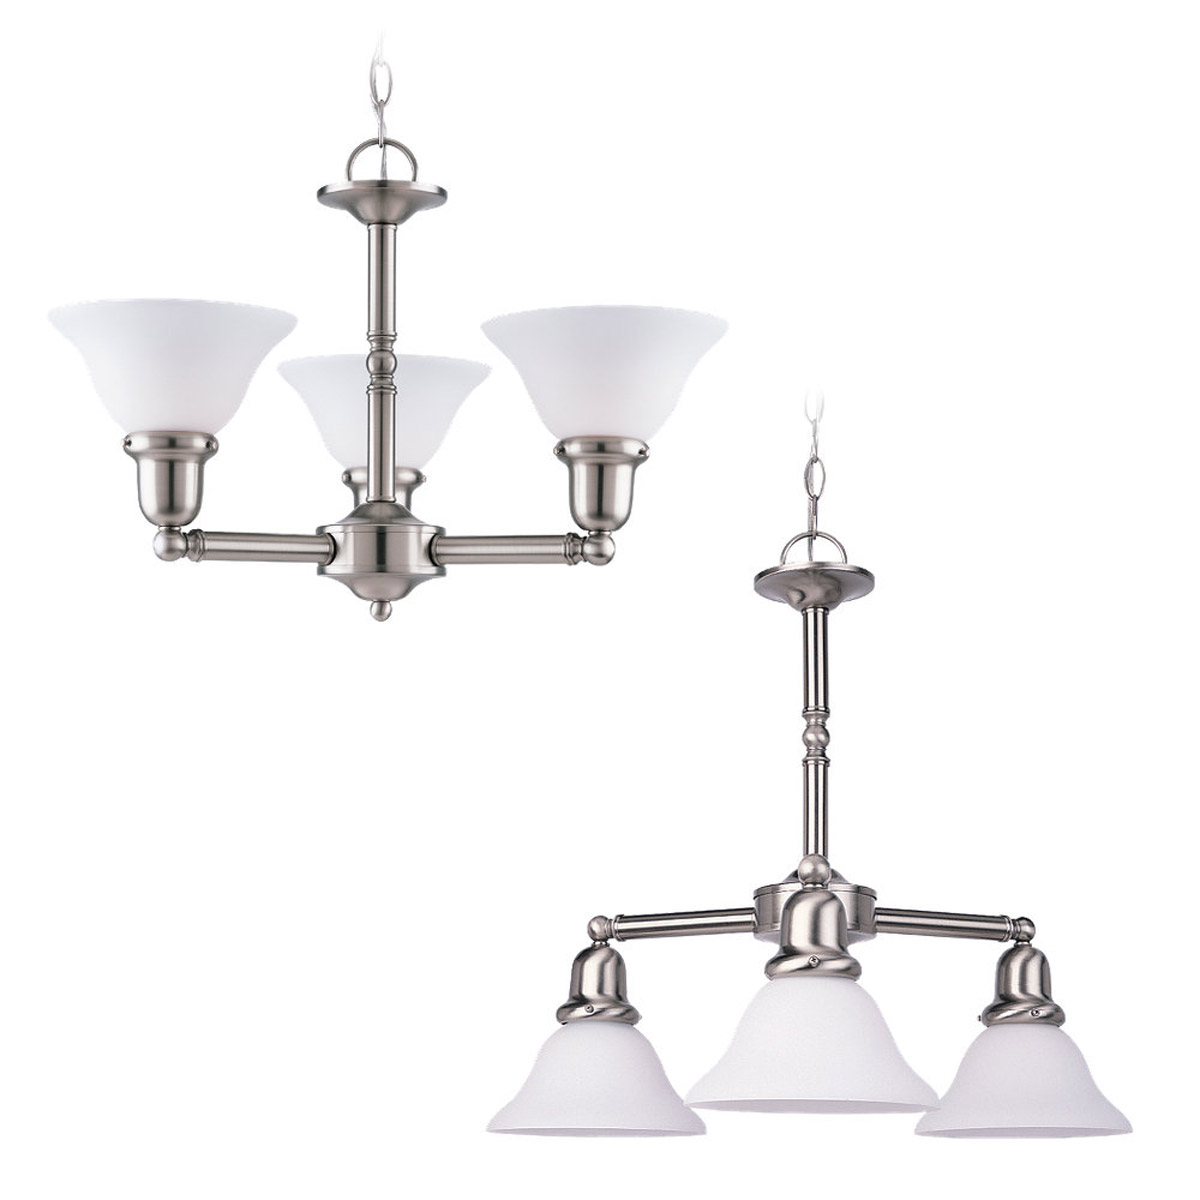 Sea Gull Lighting Sussex 3 Light Chandelier in Brushed Nickel 39061BLE-962